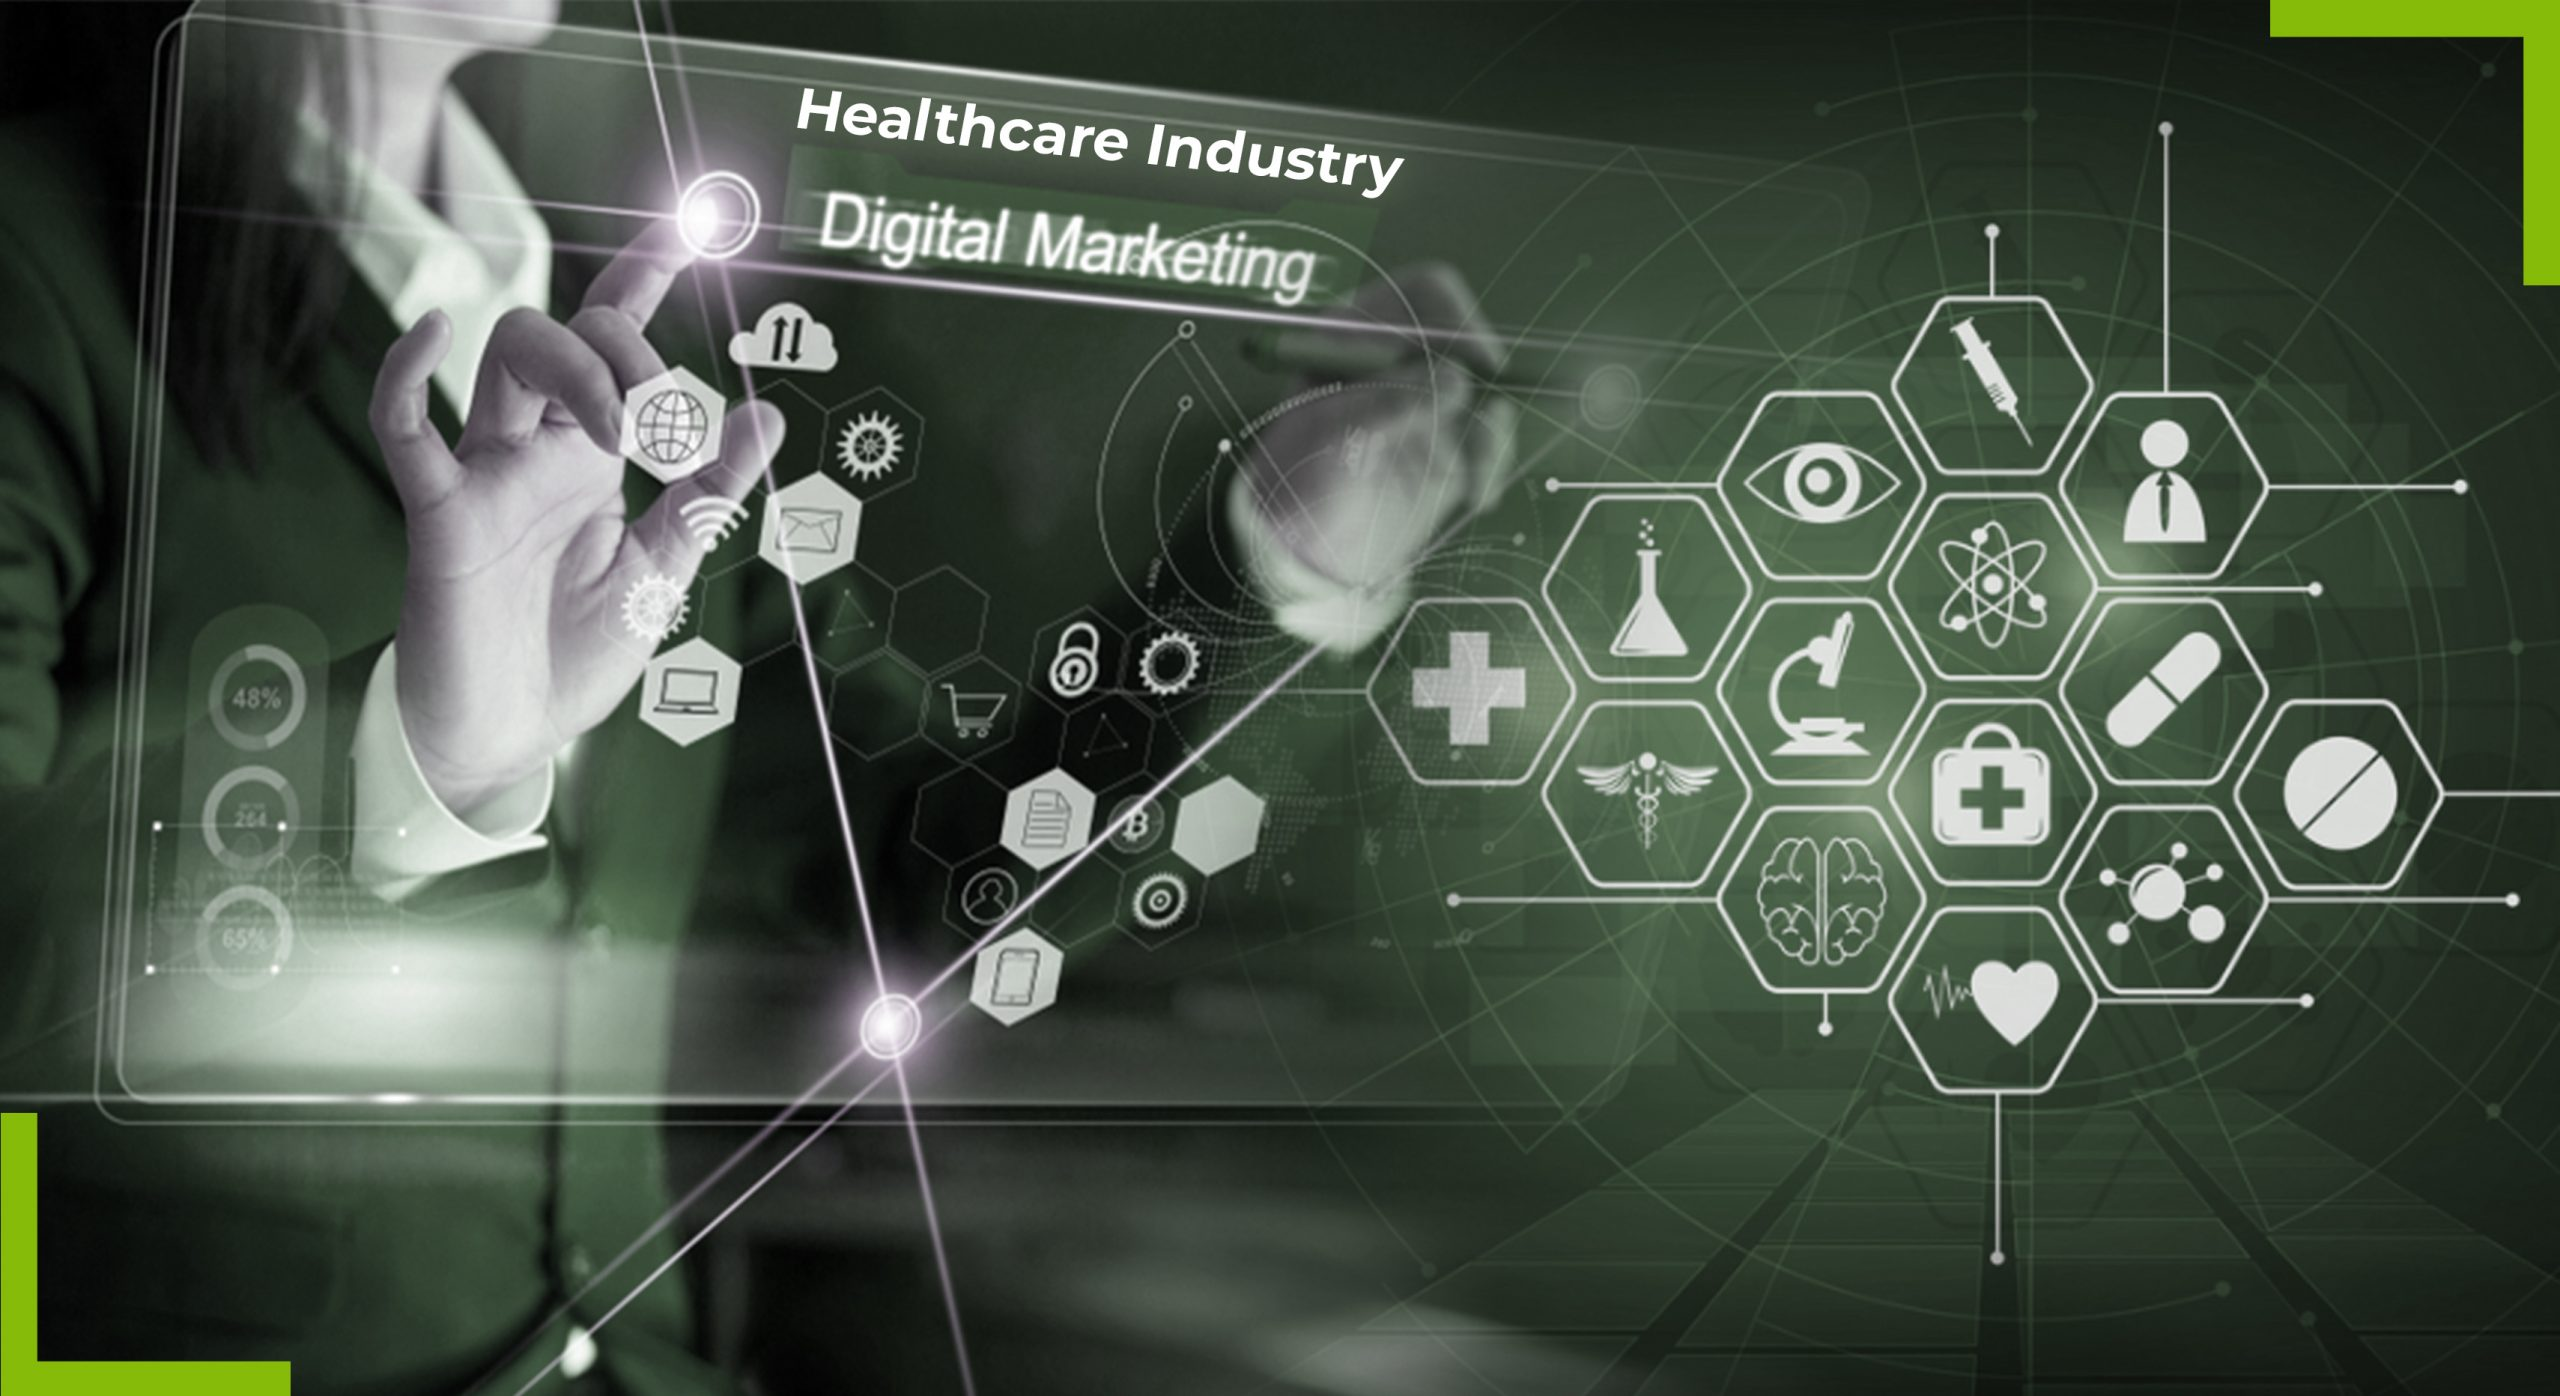 How Digital Marketing Can Help Healthcare Industry?